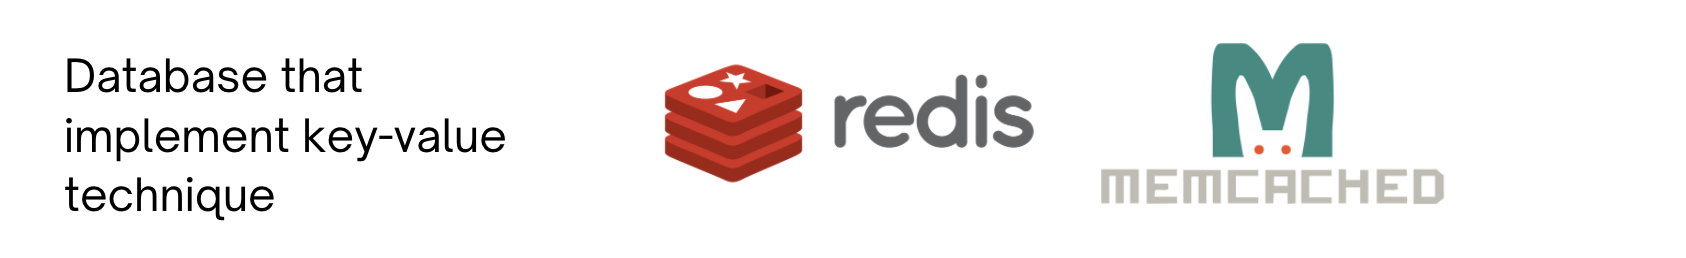 Redis and Memcached are examples of databases that use this technique.